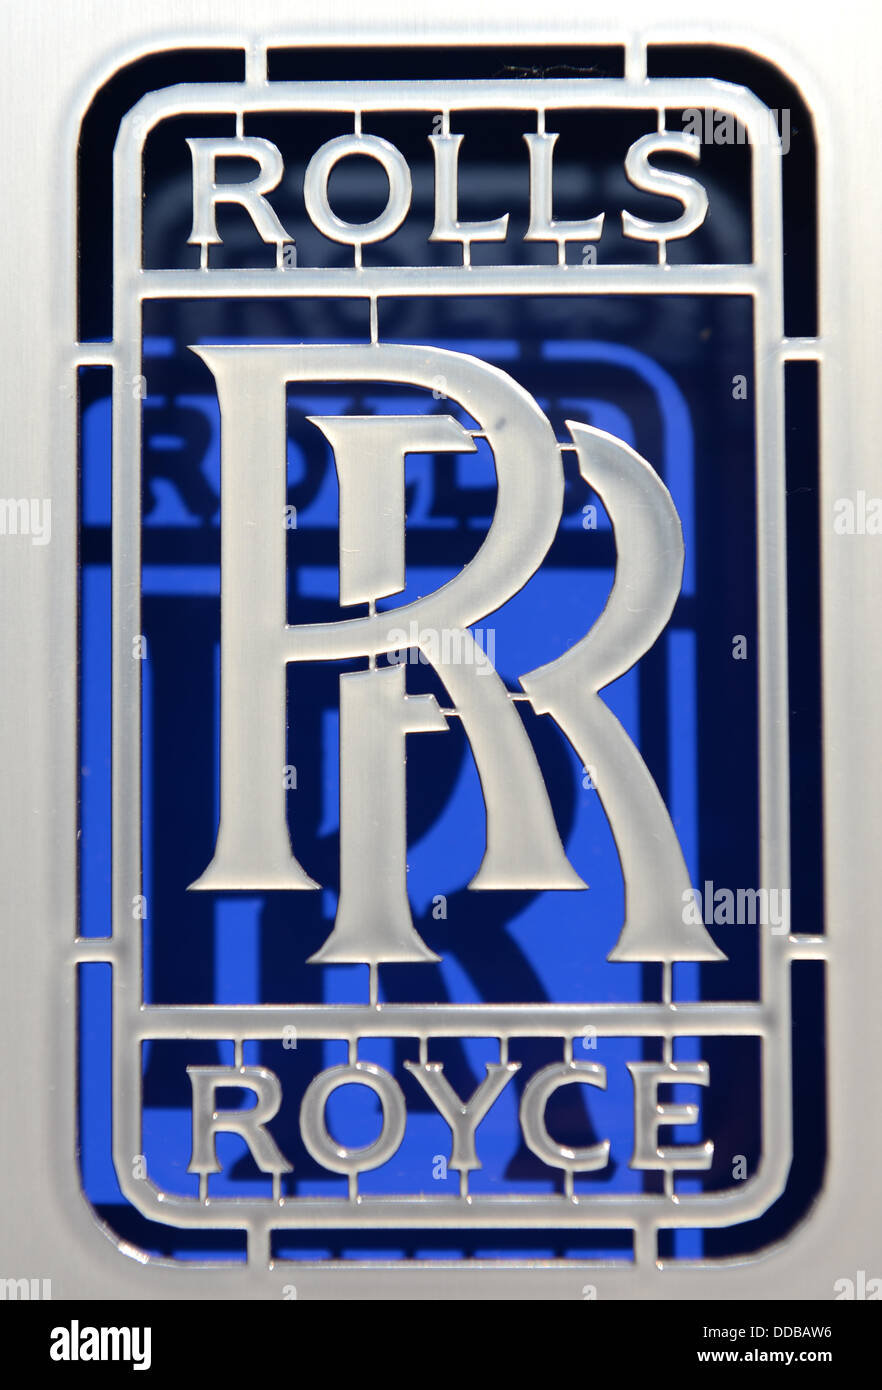 The logo of the Rolls-Royce aircraft engine manufacturing company in ...